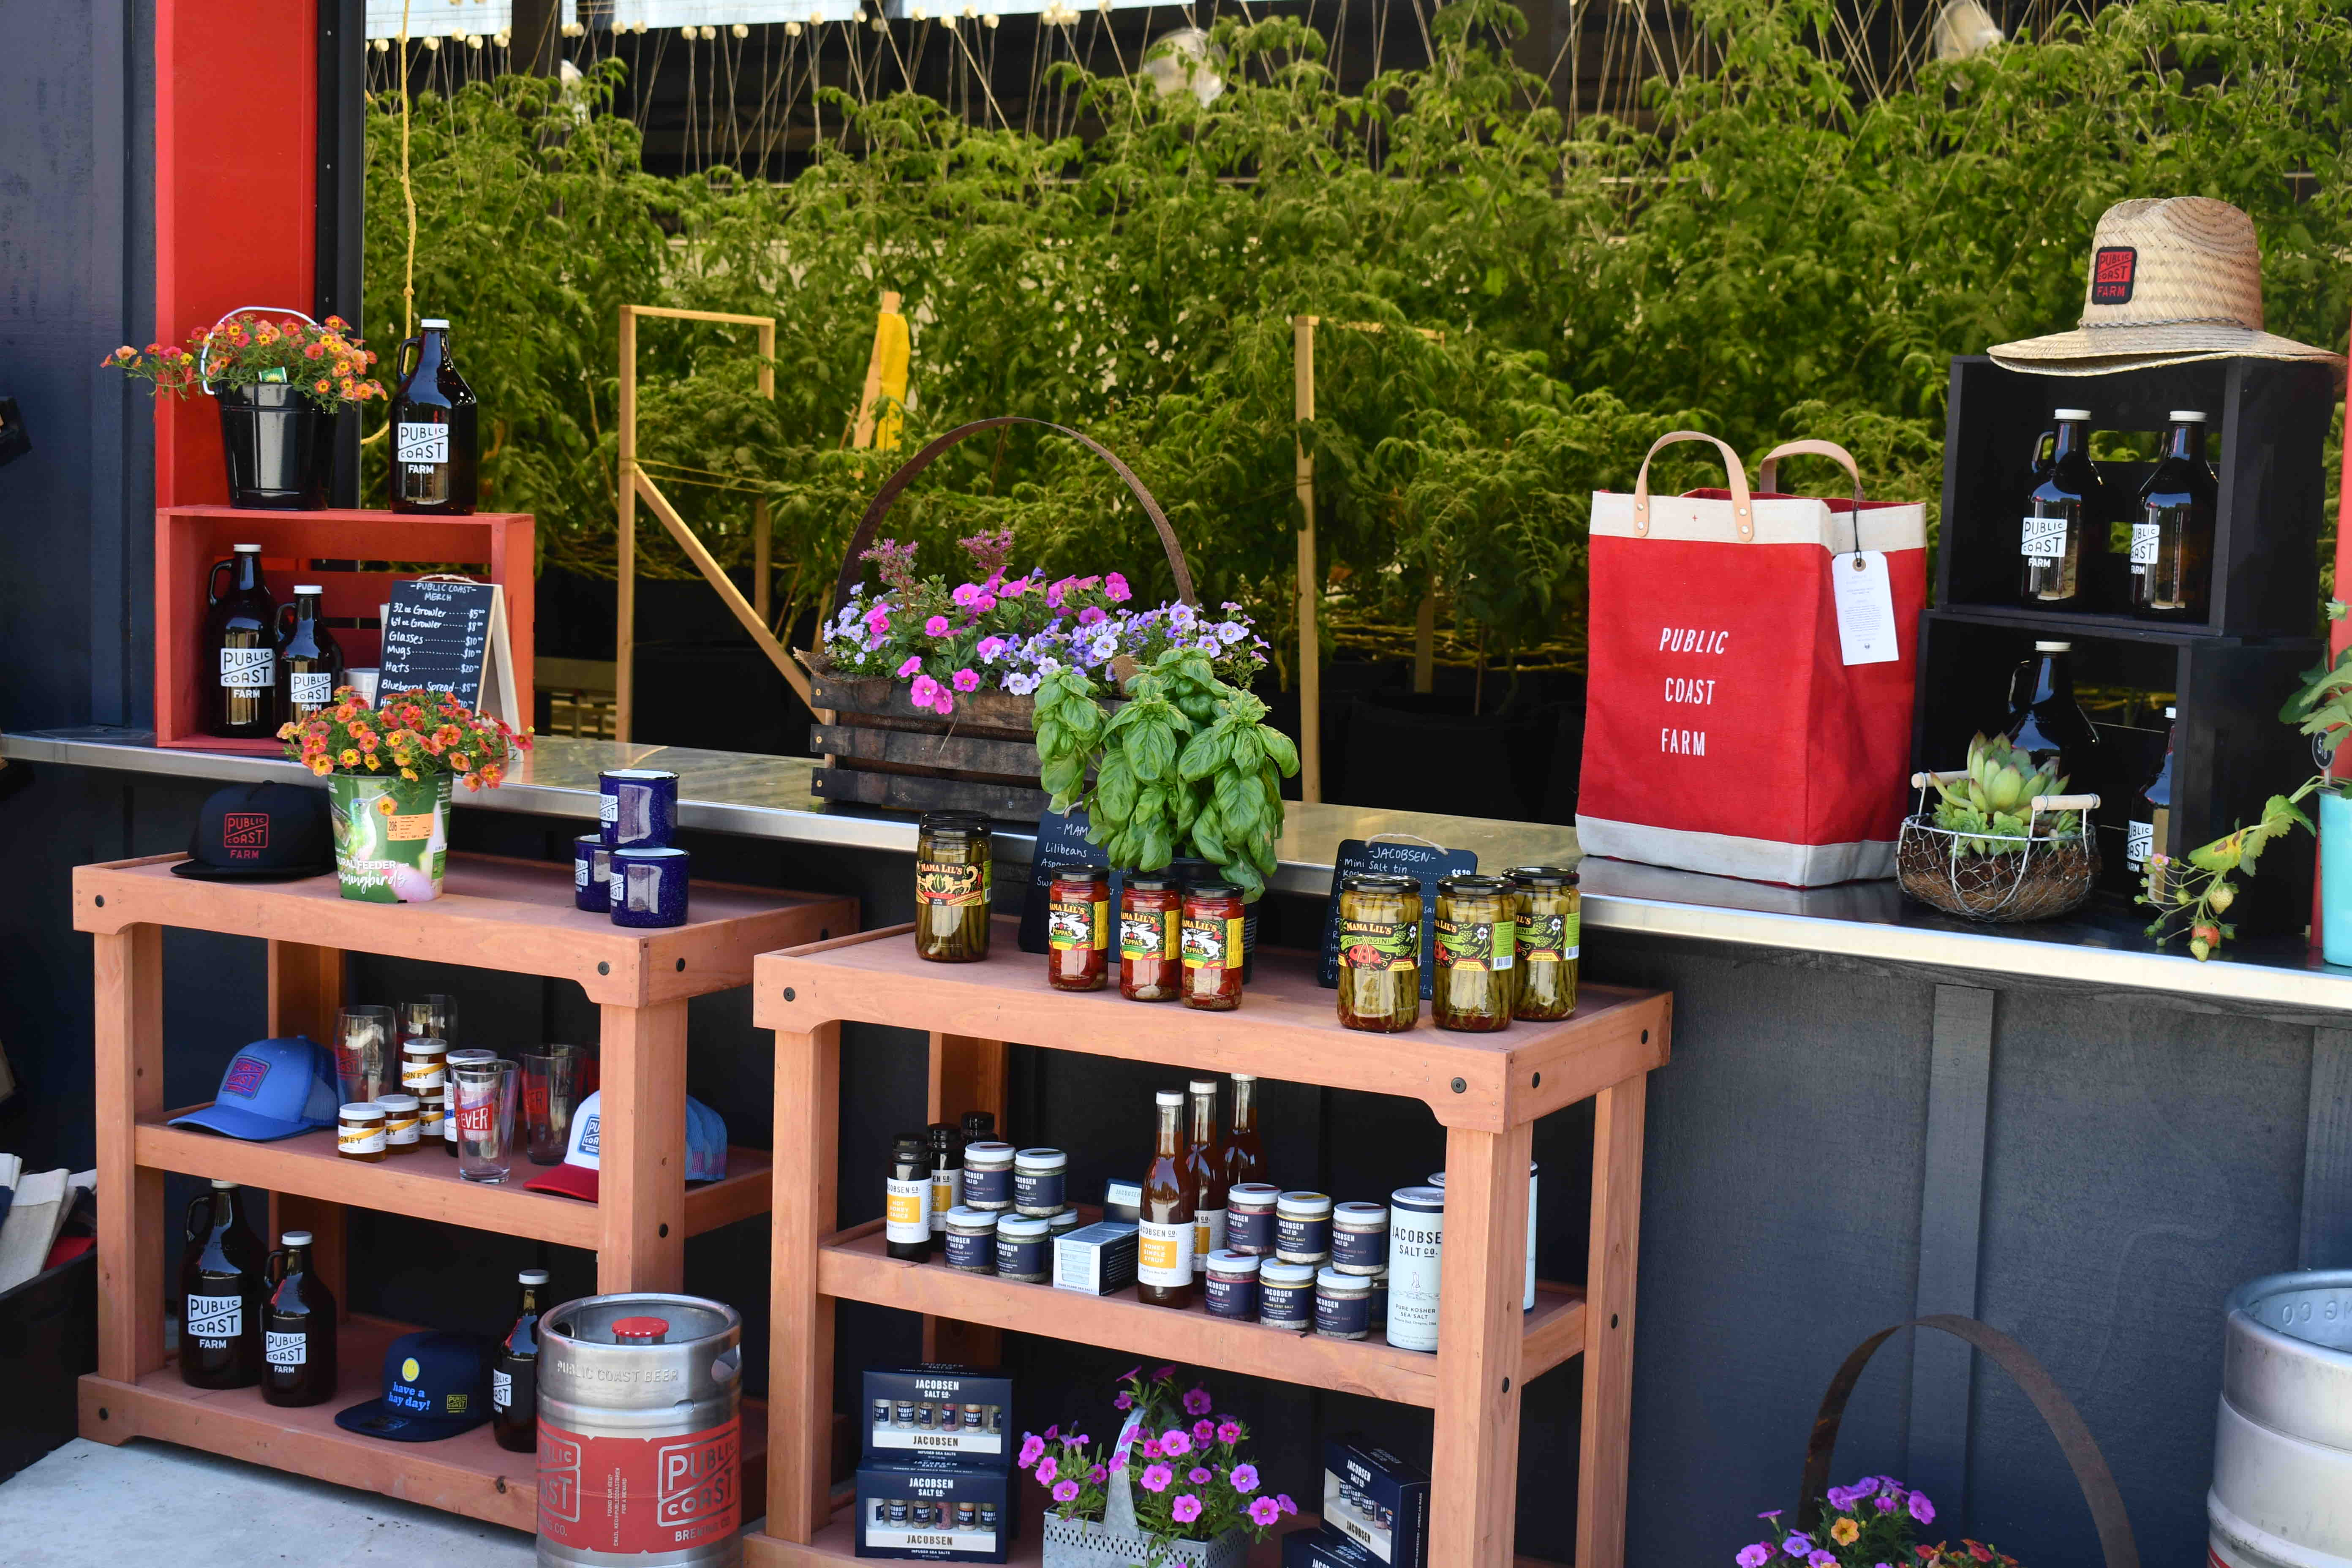 Public Coast Farm offers a stand that is full of fresh items, includeing beers from the award winning Public Coast Brewing. (image courtesy of Public Coast Brewing)